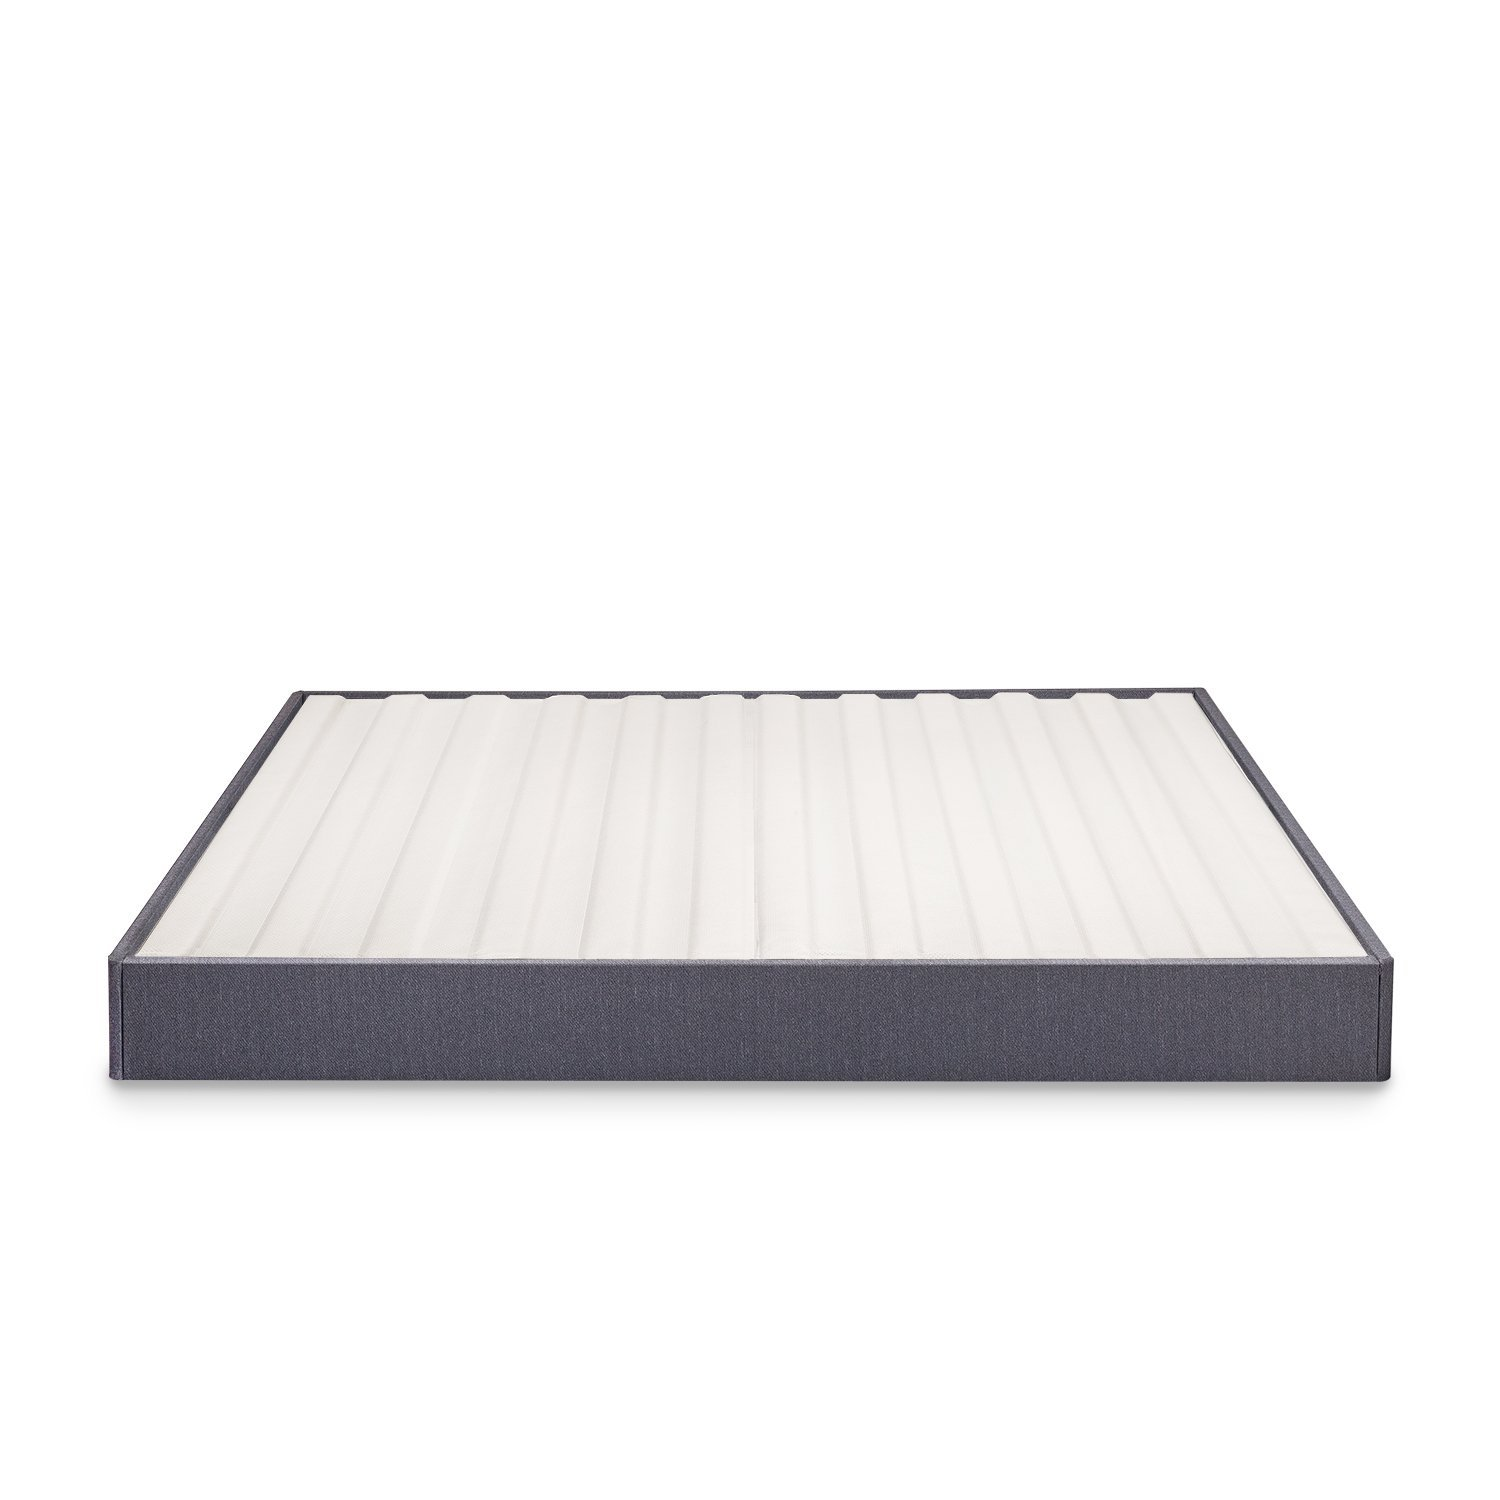 Zinus Daniel 7.5 Inch Essential Metal Box Spring with Easy Assembly , Full